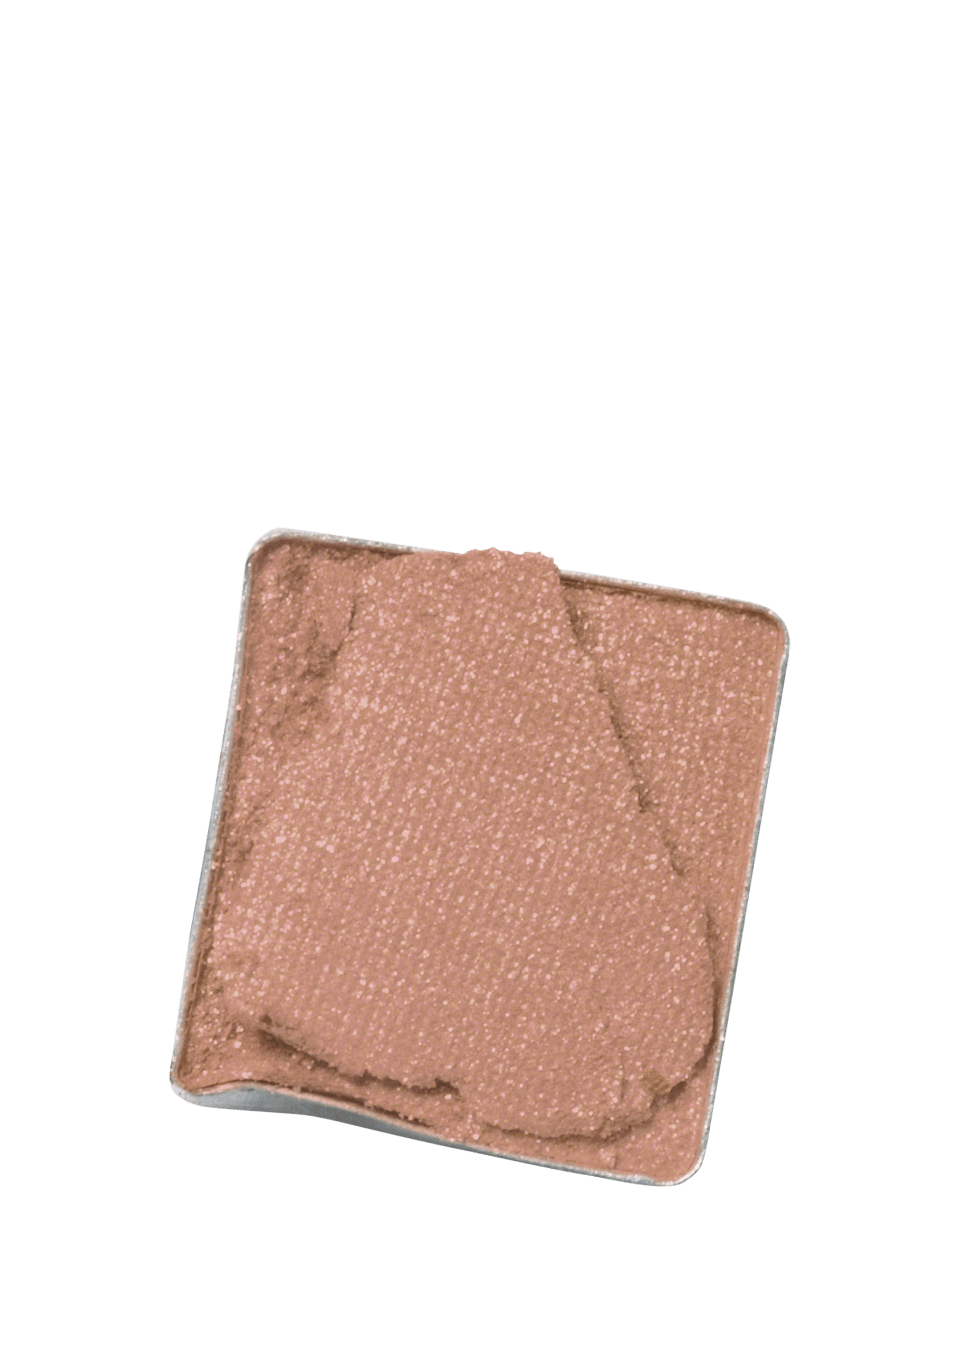 Personal Care - Annemarie Borlind Powder Eye Shadow - Nude, 2g